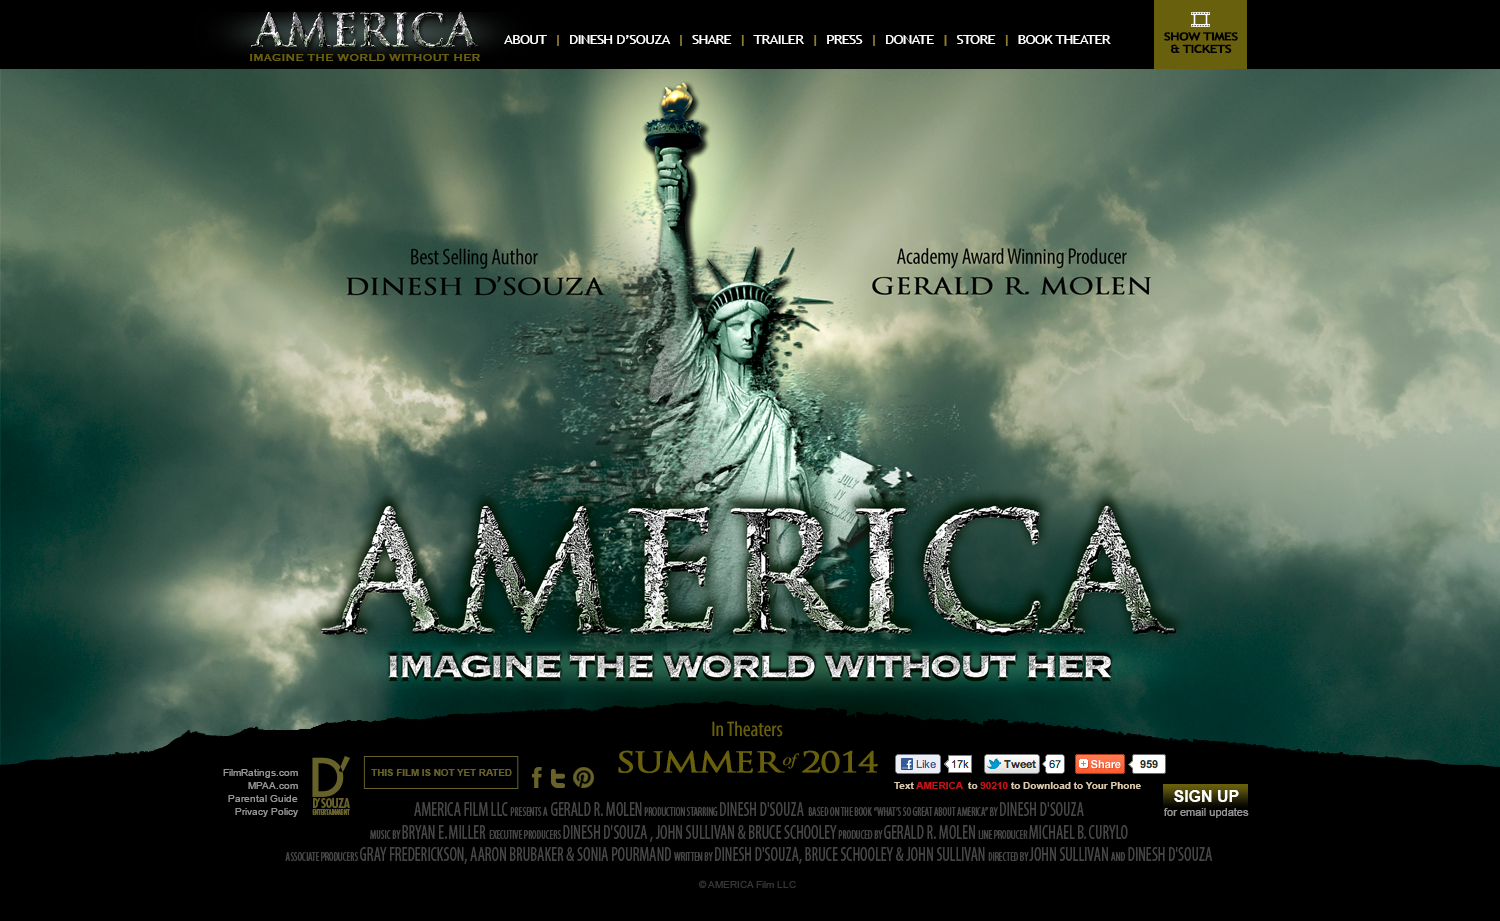 AMERICA: Imagine the World Without Her / Web Design